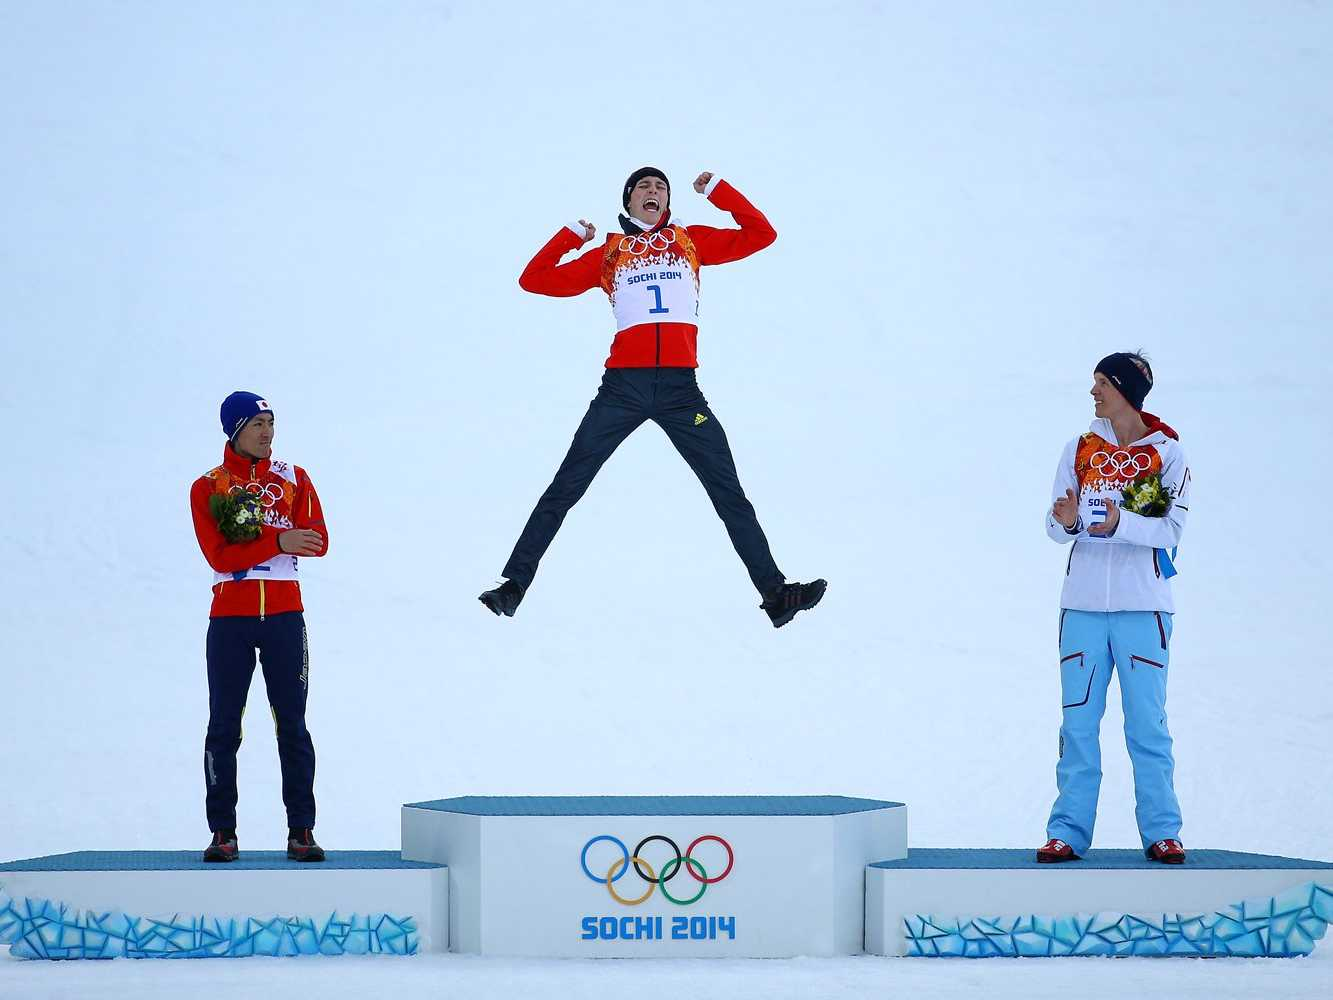 nordic-combined-gold-medalist-jumps-for-joy-in-the-best-podium-celebration-of-the-olympics